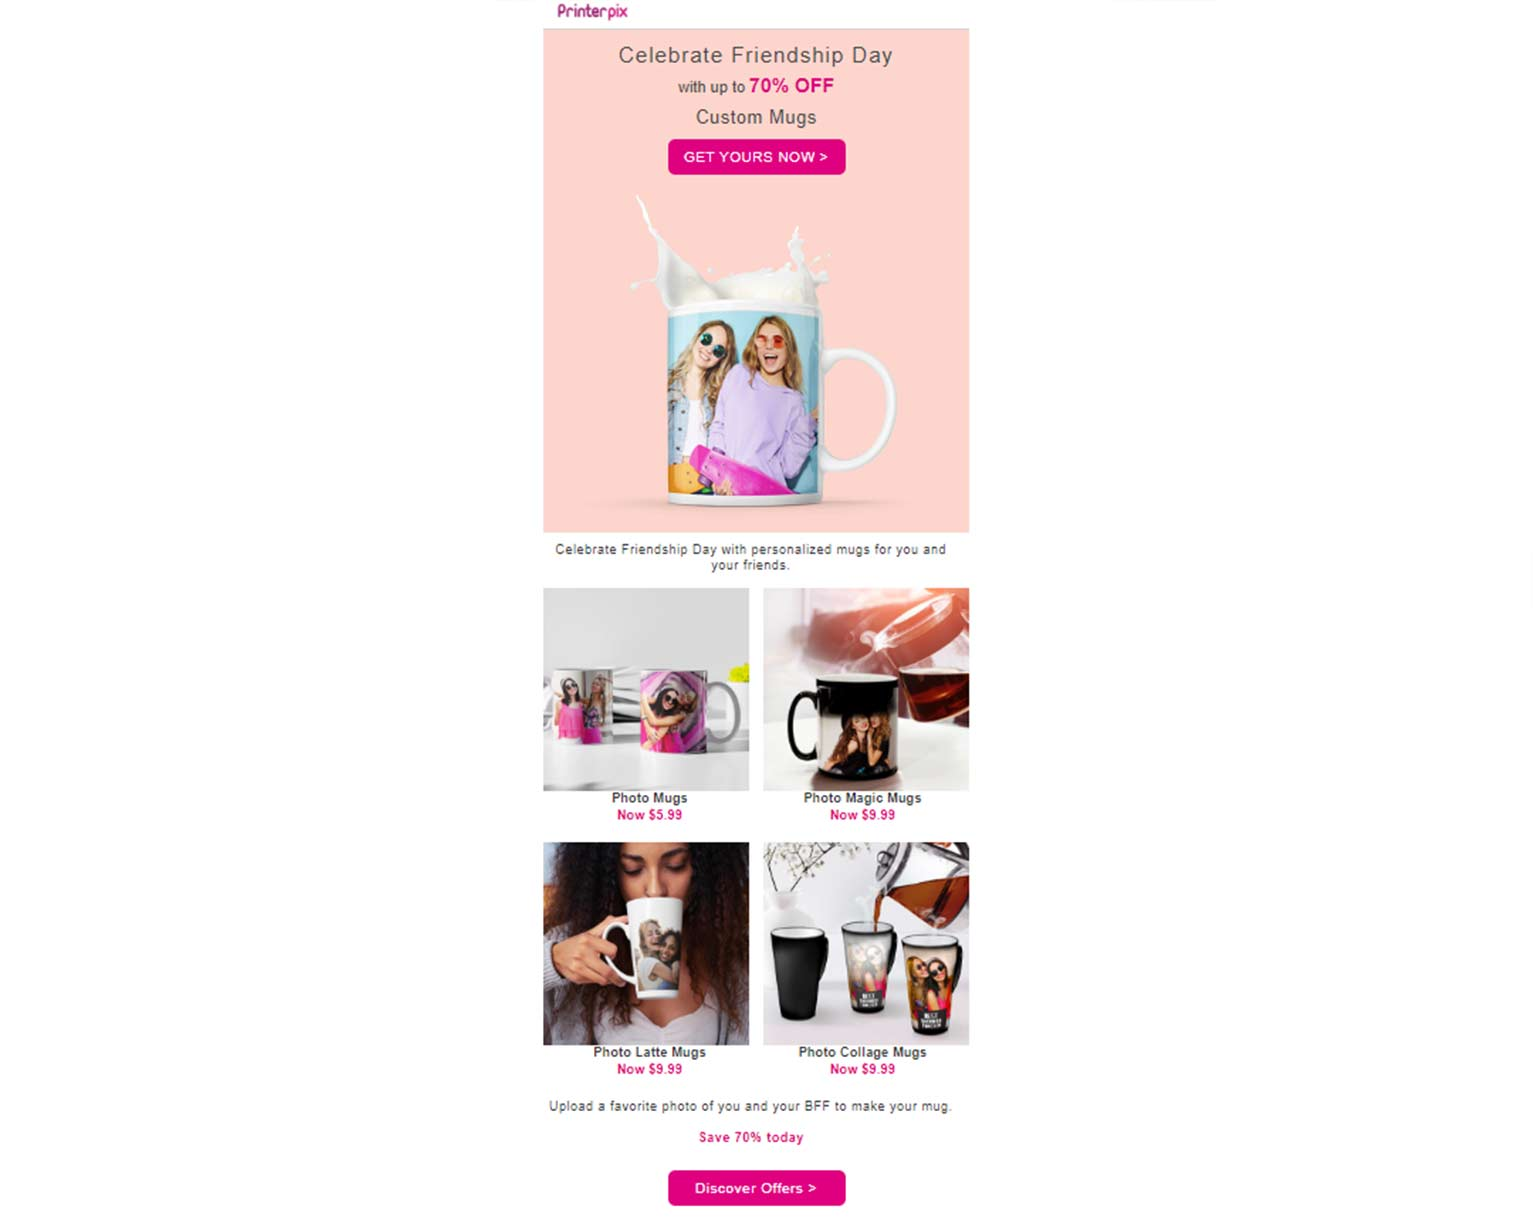 Printerpix marketing email for Friendship Day promotion, with personalized mugs for sale. One has a photo of 2 girls with sunglasses. Several CTAs included.